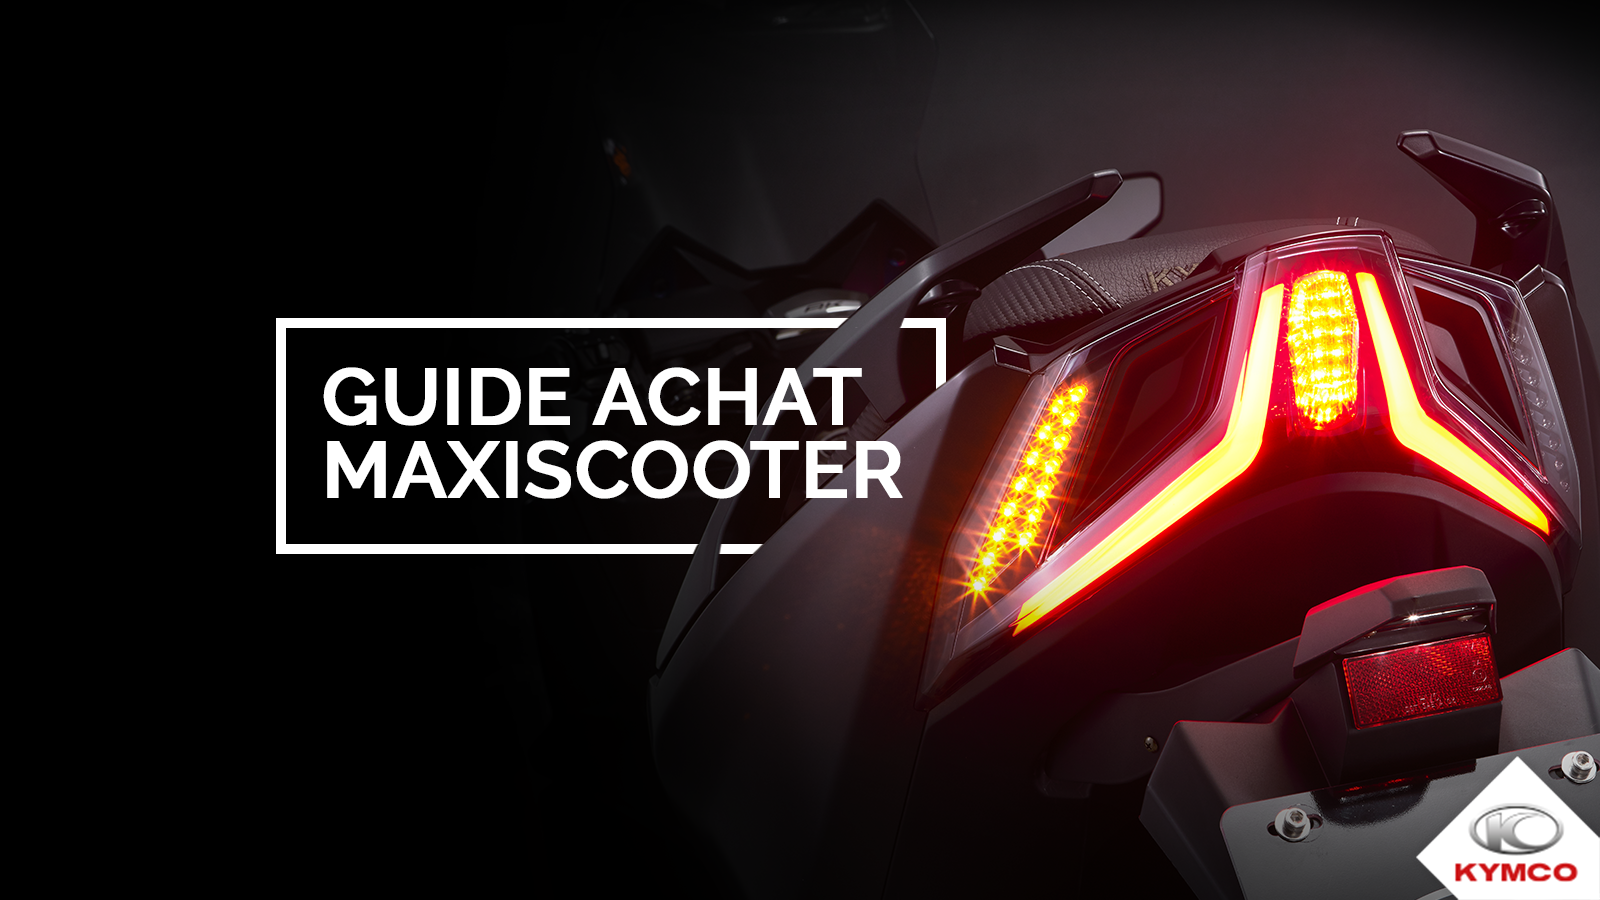 Guide_achat_maxiscooters-featured1